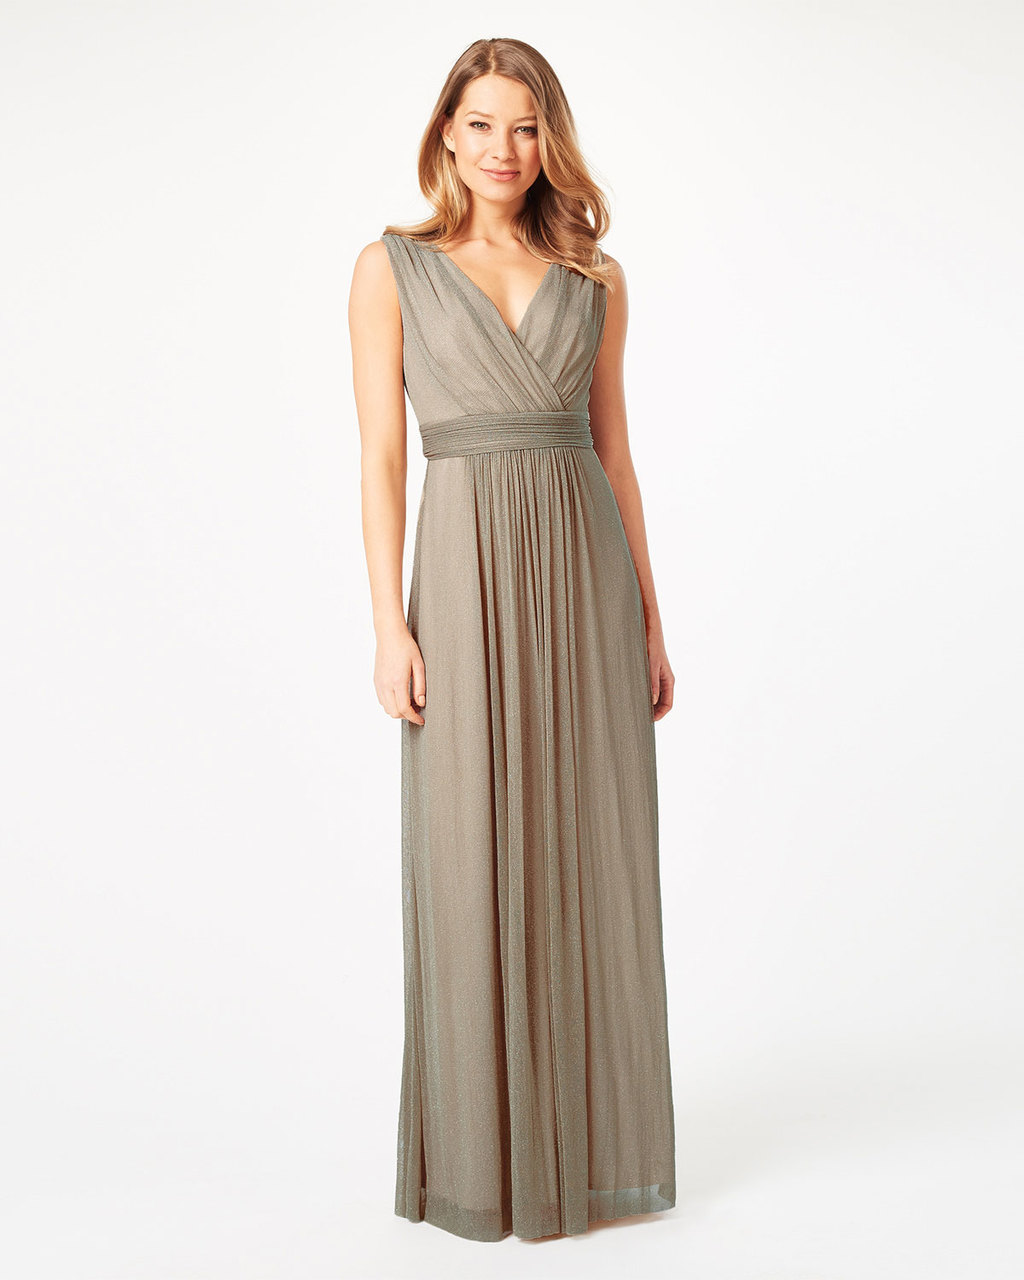 Millicent Maxi Dress - neckline: v-neck; pattern: plain; sleeve style: sleeveless; style: maxi dress; waist detail: belted waist/tie at waist/drawstring; predominant colour: taupe; length: floor length; fit: body skimming; fibres: nylon - mix; occasions: occasion; sleeve length: sleeveless; pattern type: fabric; texture group: other - light to midweight; season: s/s 2016